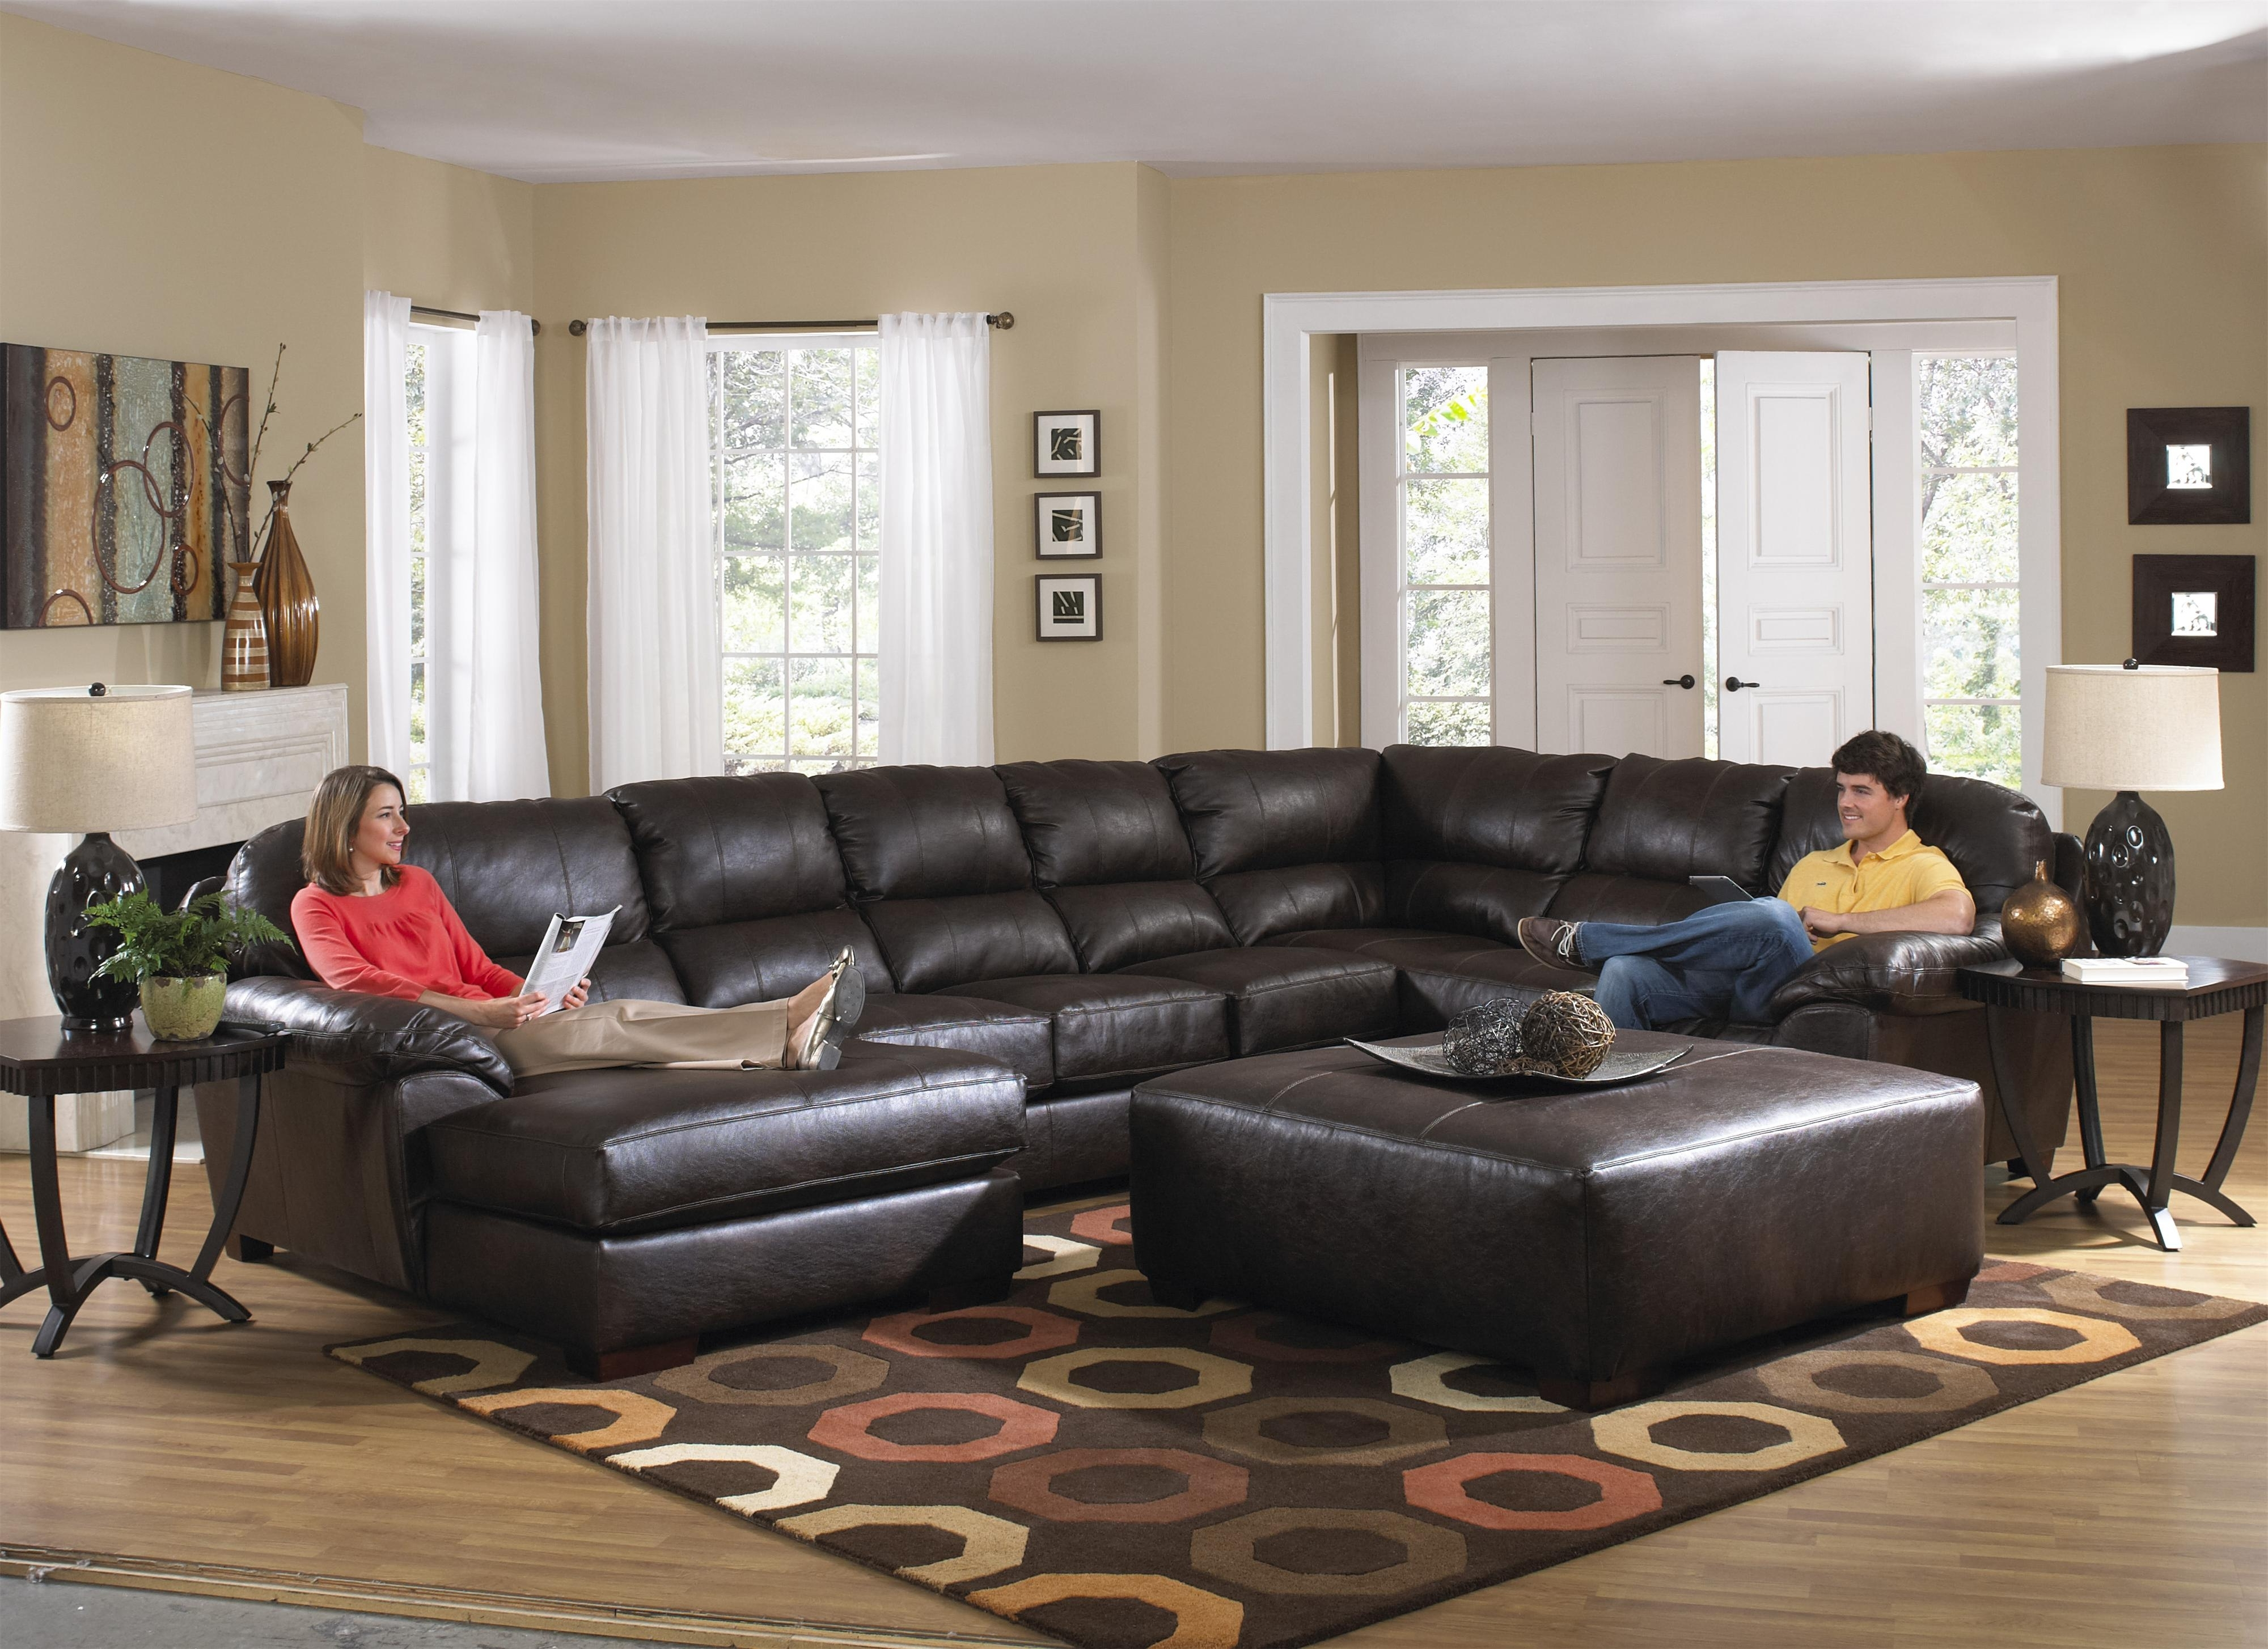 Couches With Large Ottoman Within Fashionable Oversized Couches Ashley Furniture Extra Deep Couch Oversized (View 7 of 20)